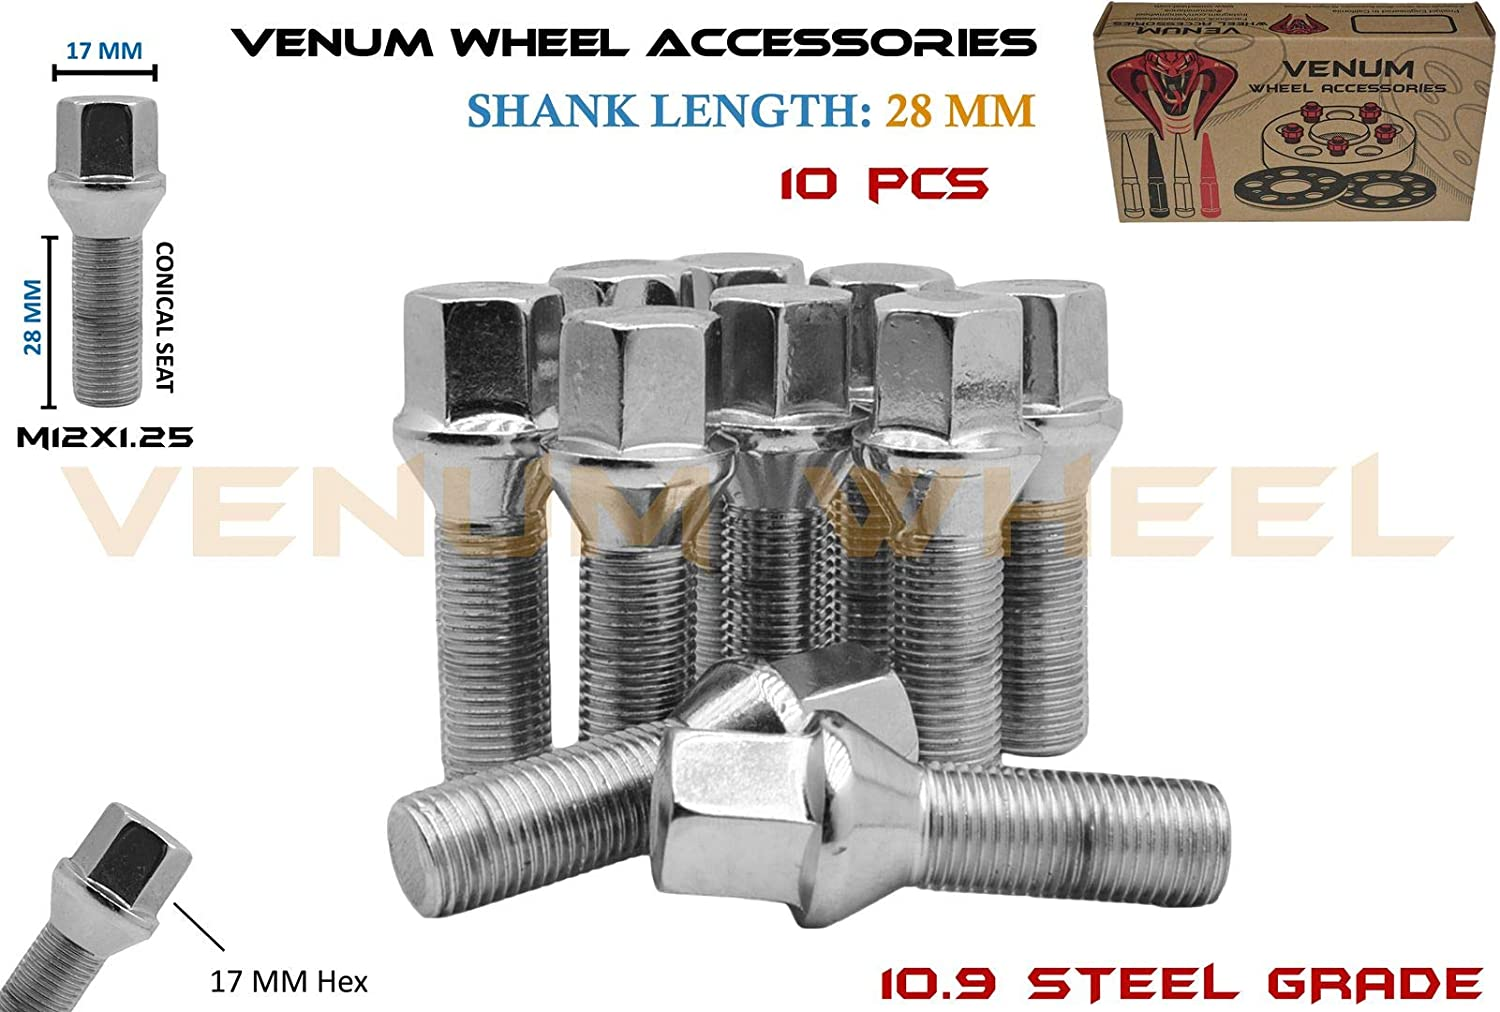 Venum wheel accessories 10Pc Zinc Rust Resistant M12x1.25 Conical Seat Lug Bolts 28 MM Factory Shank Length Works with Jeep Fiat Dodge Chrysler Alfa Romeo Factory & Aftermarket Wheels